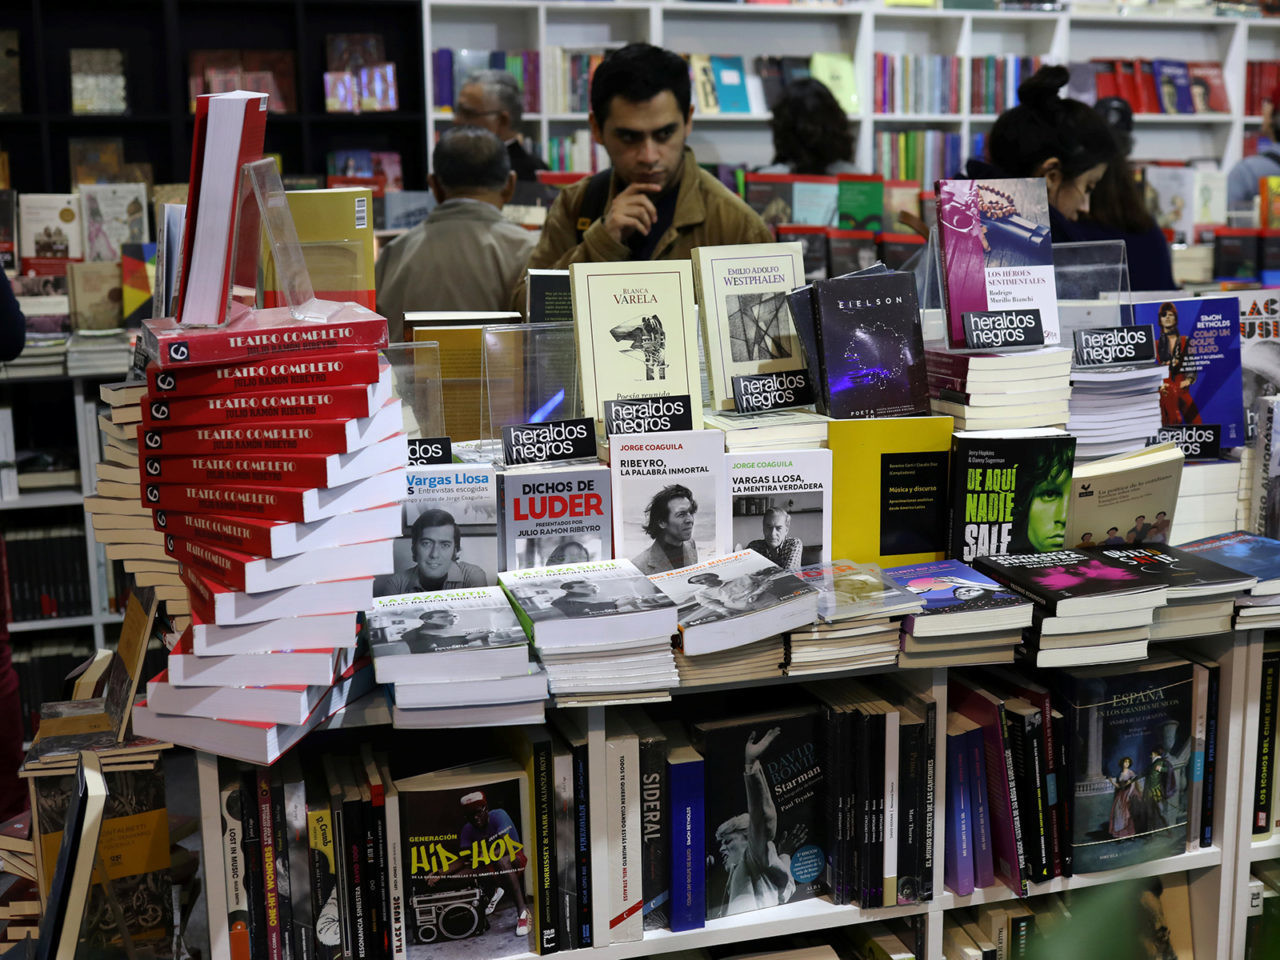 People browse through books during the 23rd Lima International Book Fair in Lima, Peru August 1, 2018. REUTERS/Mariana Bazo